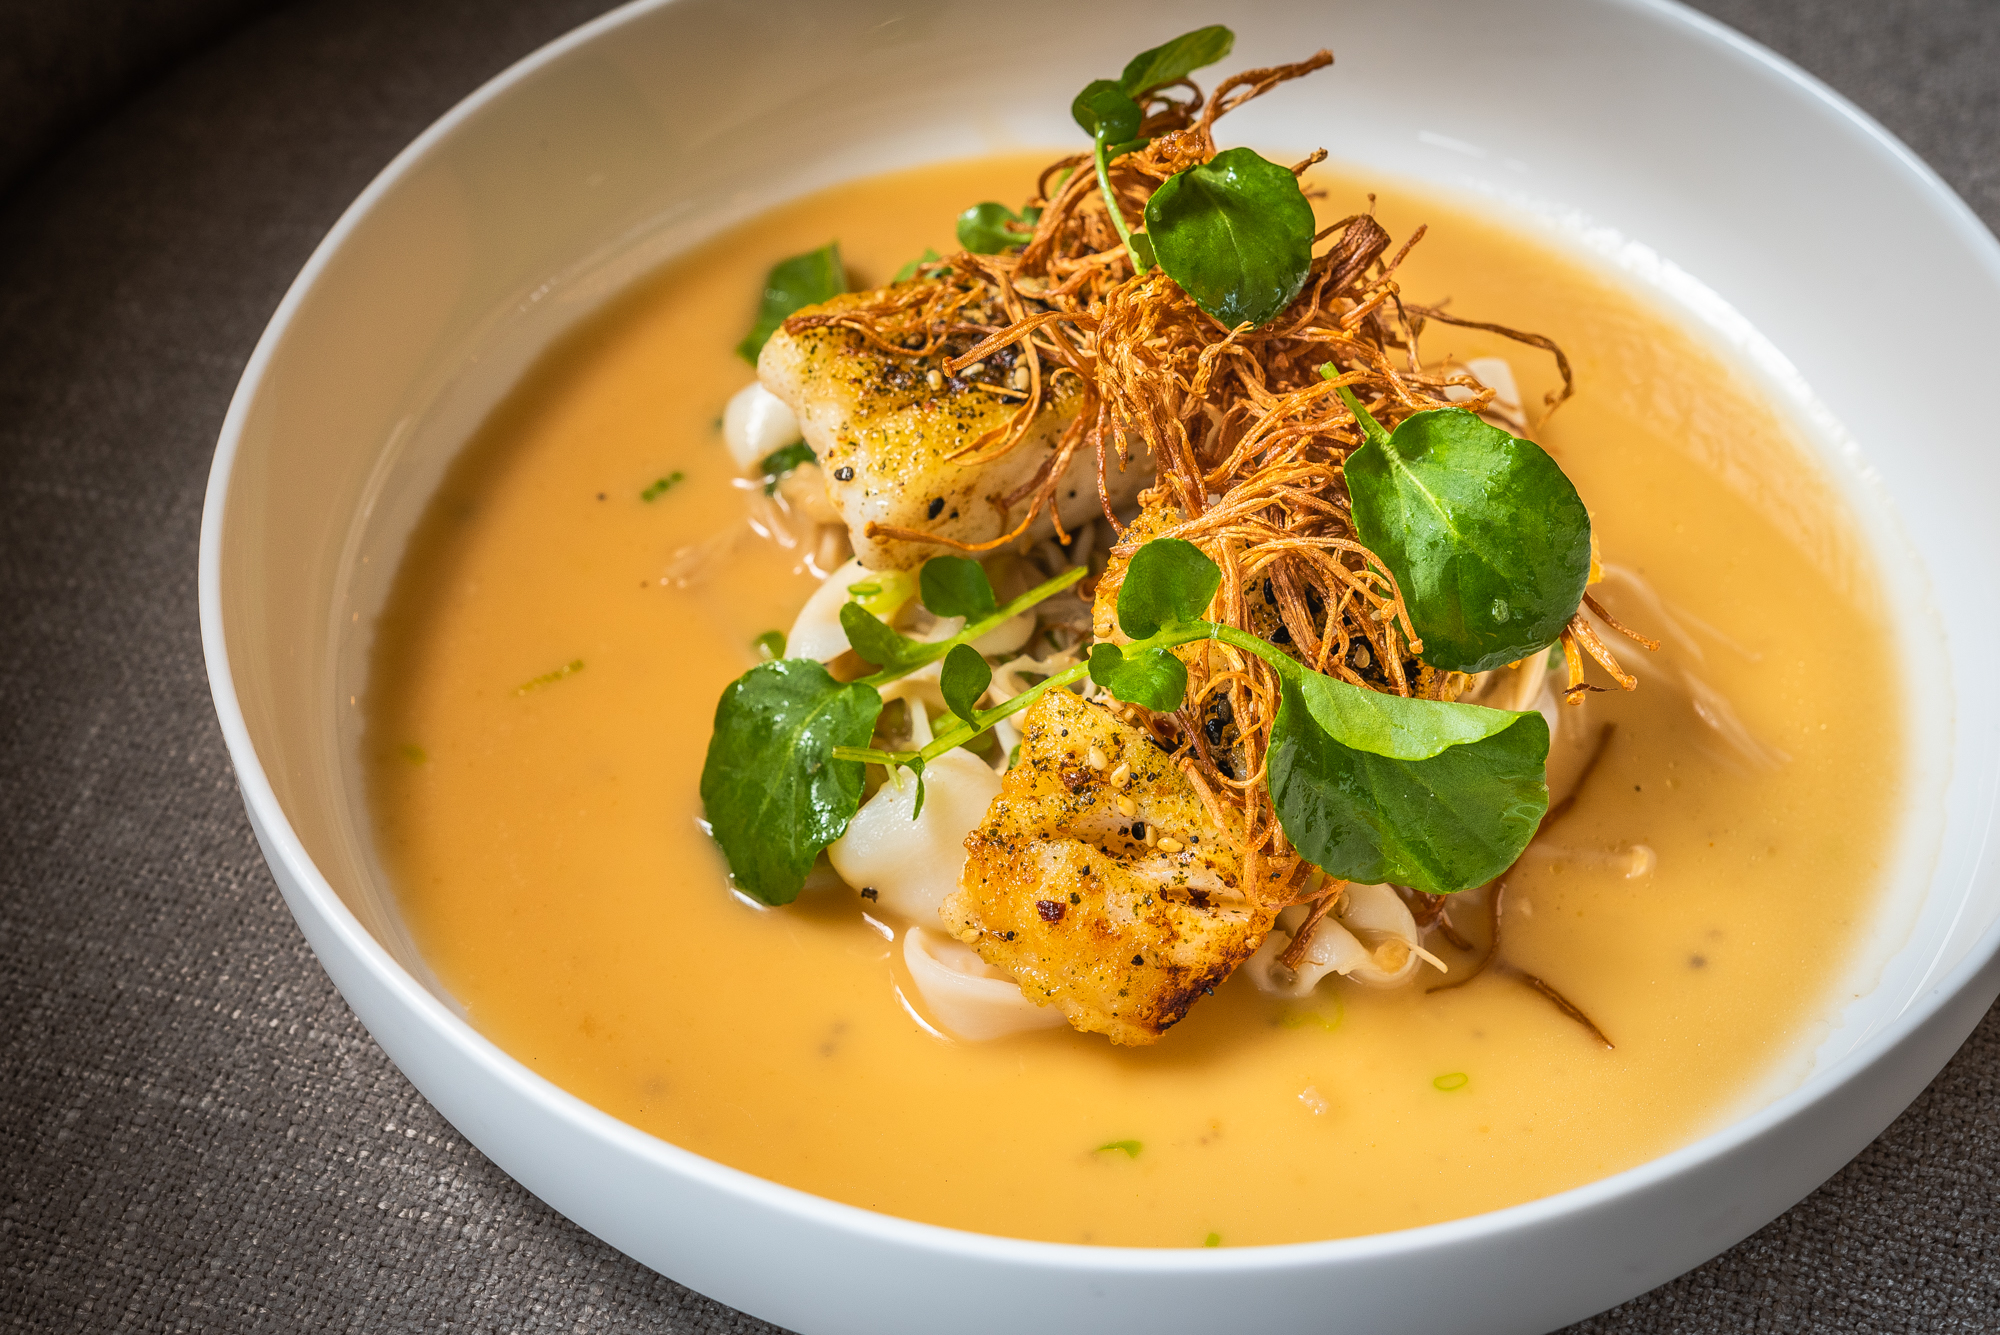 Estuary Introduces Brunch With More Modern Twists on Classics